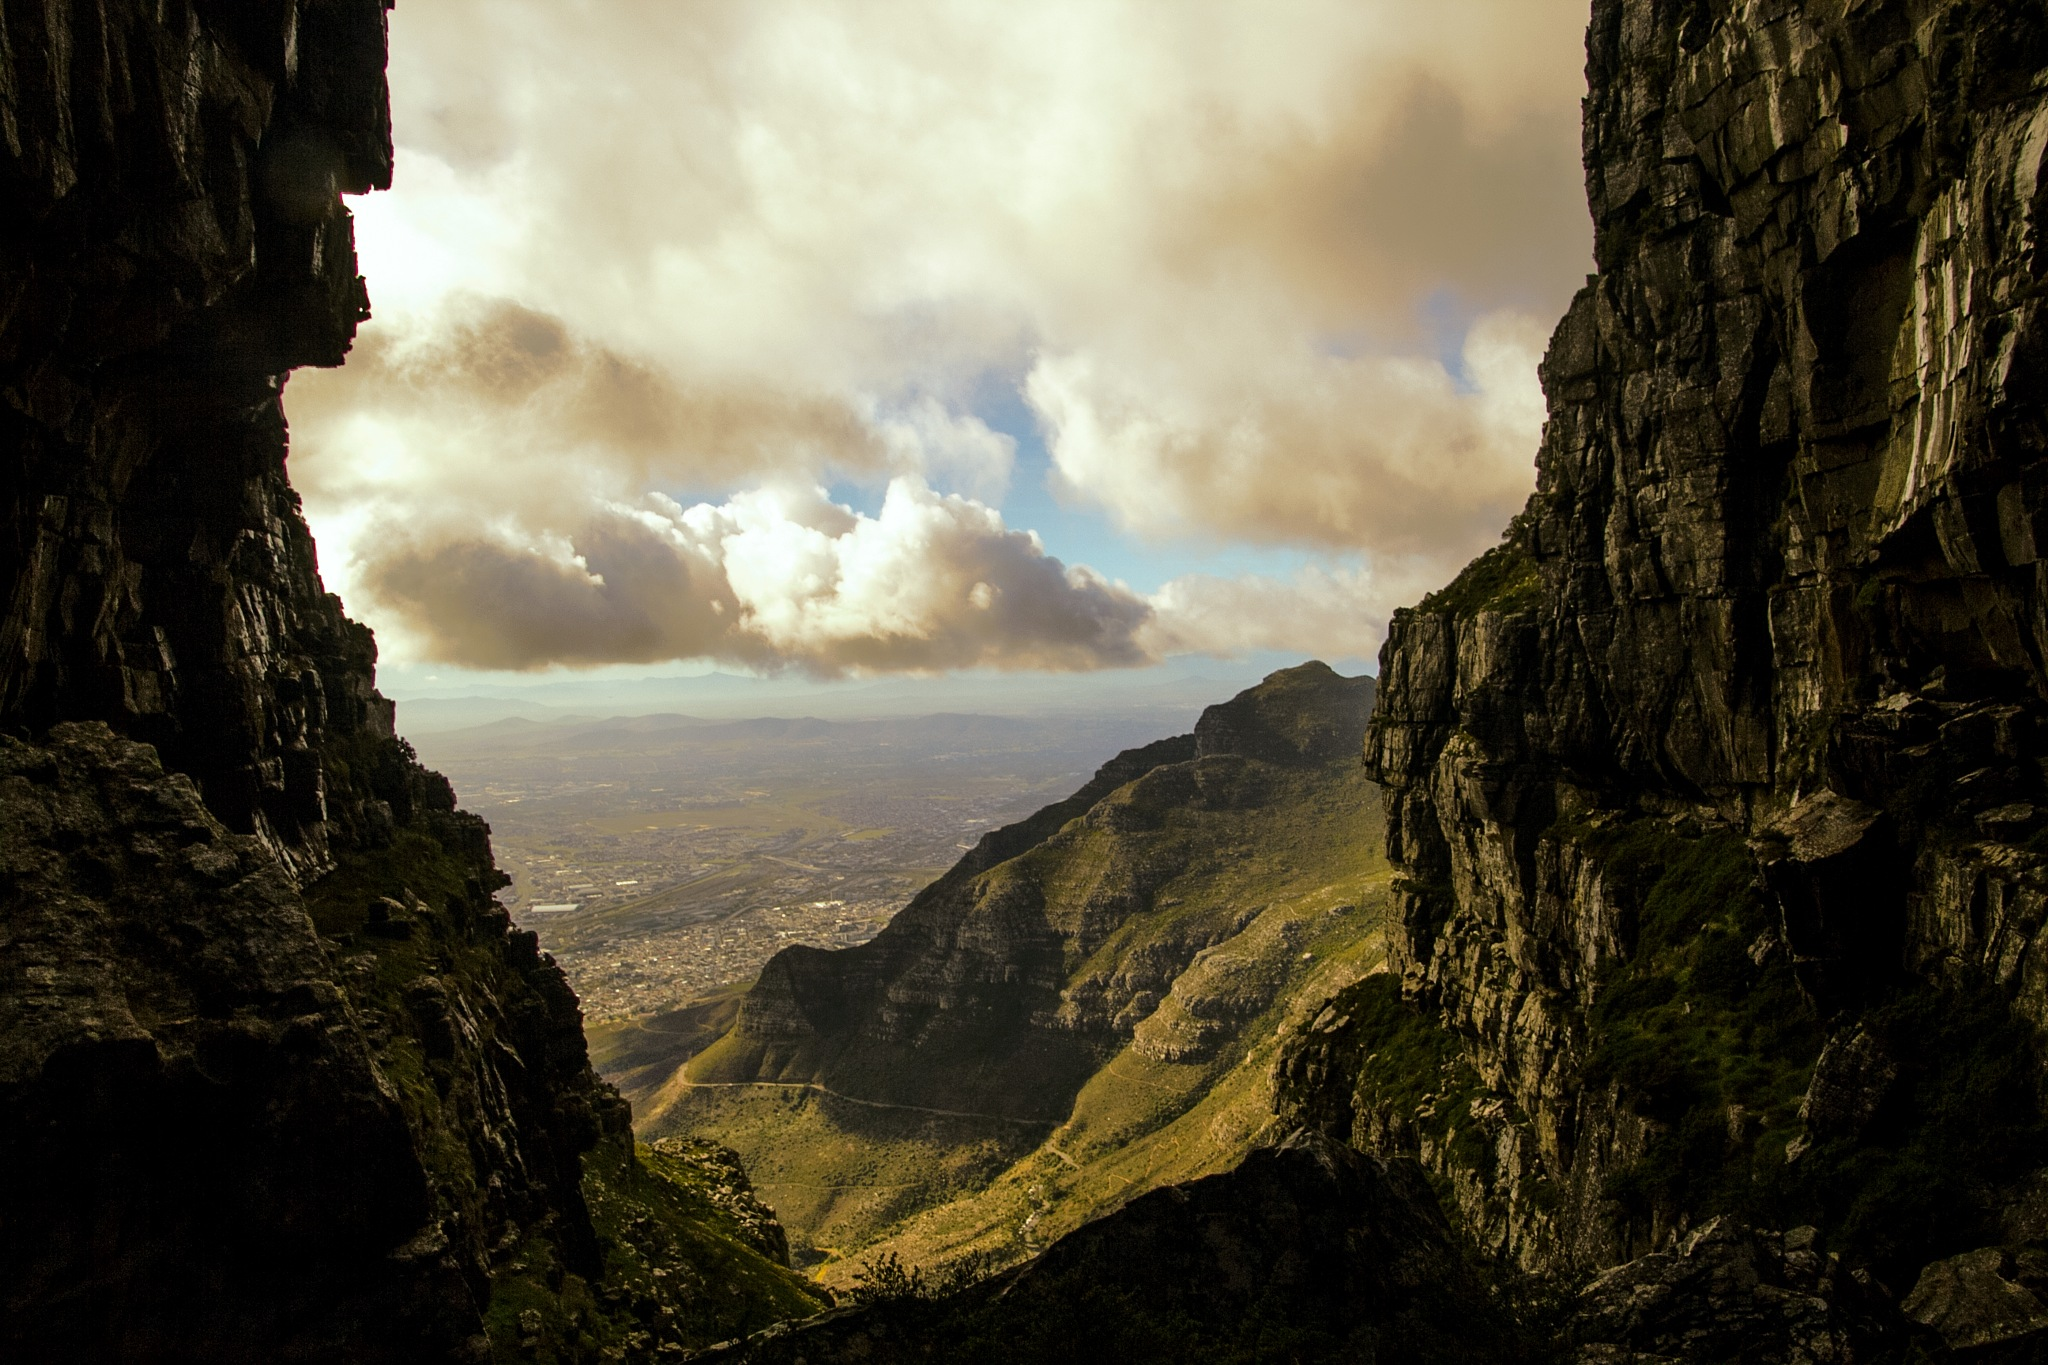 At the top of Platteklip Gorge by Nauta Piscatorque